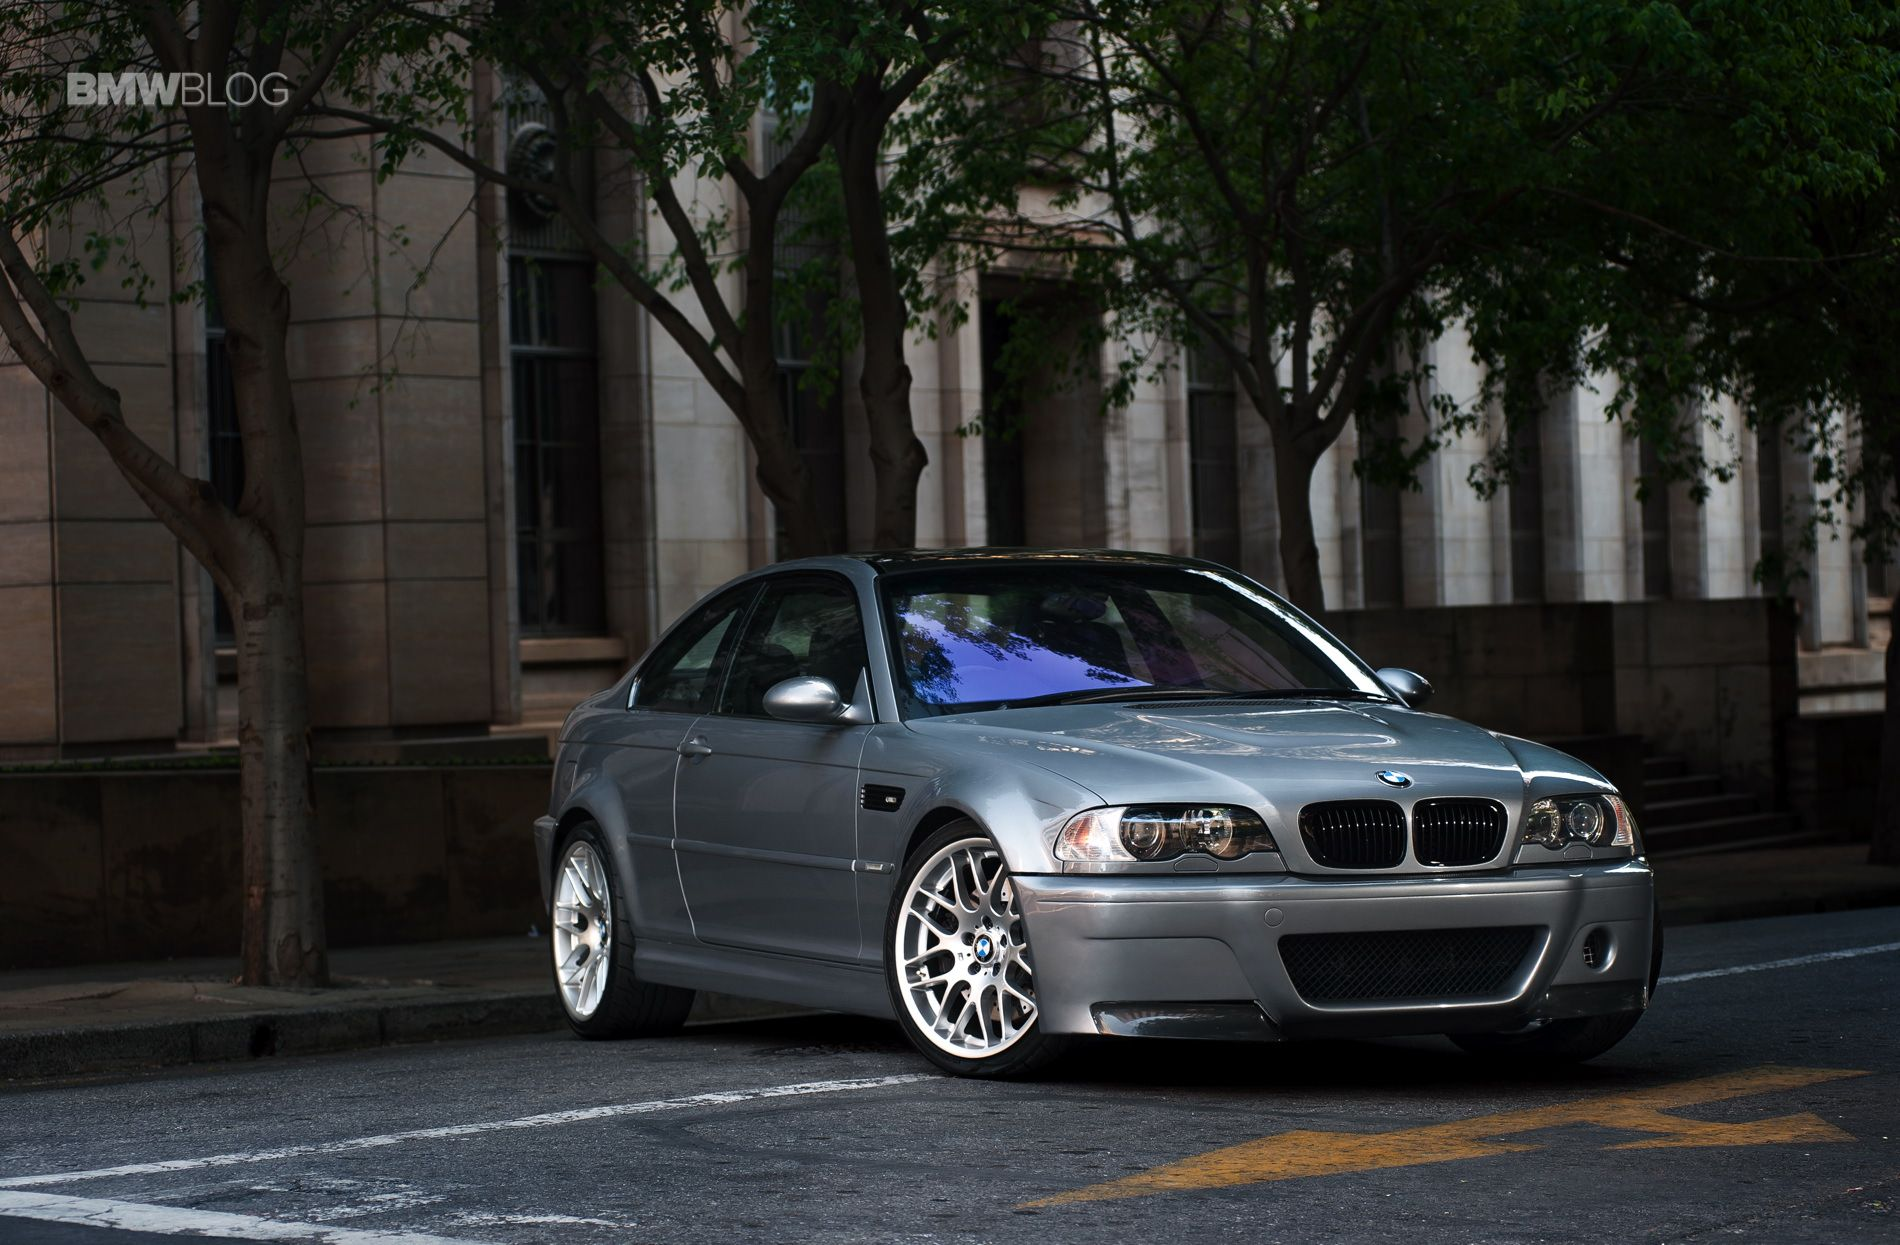 pin by dan wagener on e46 m3 bmw m3 bmw cool cars. Black Bedroom Furniture Sets. Home Design Ideas